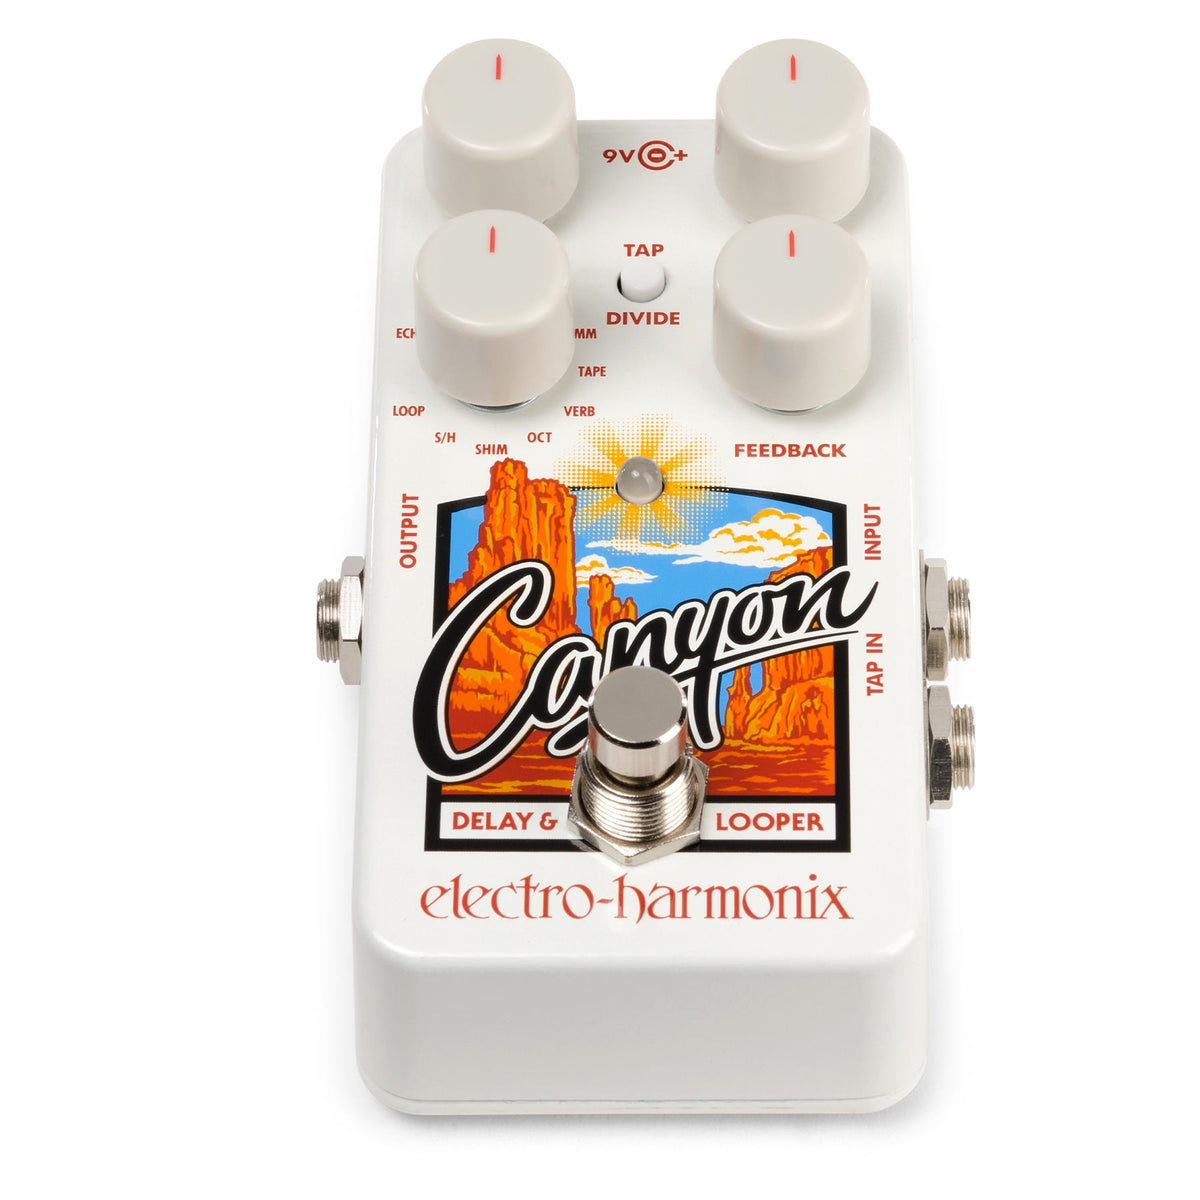 Electro-Harmonix Canyon Delay And Looper Guitar Effects Pedal with 9.6V Power Supply